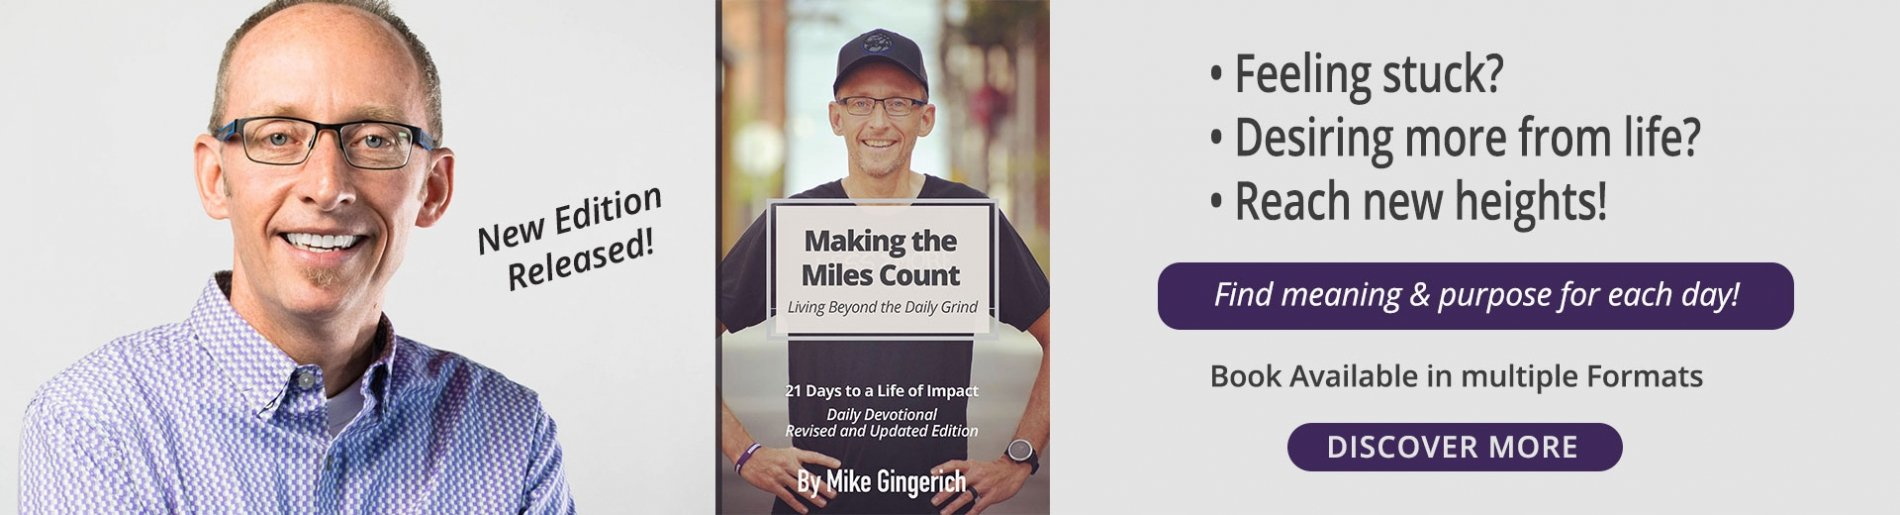 Making the Miles Count - Mike Gingerich Book